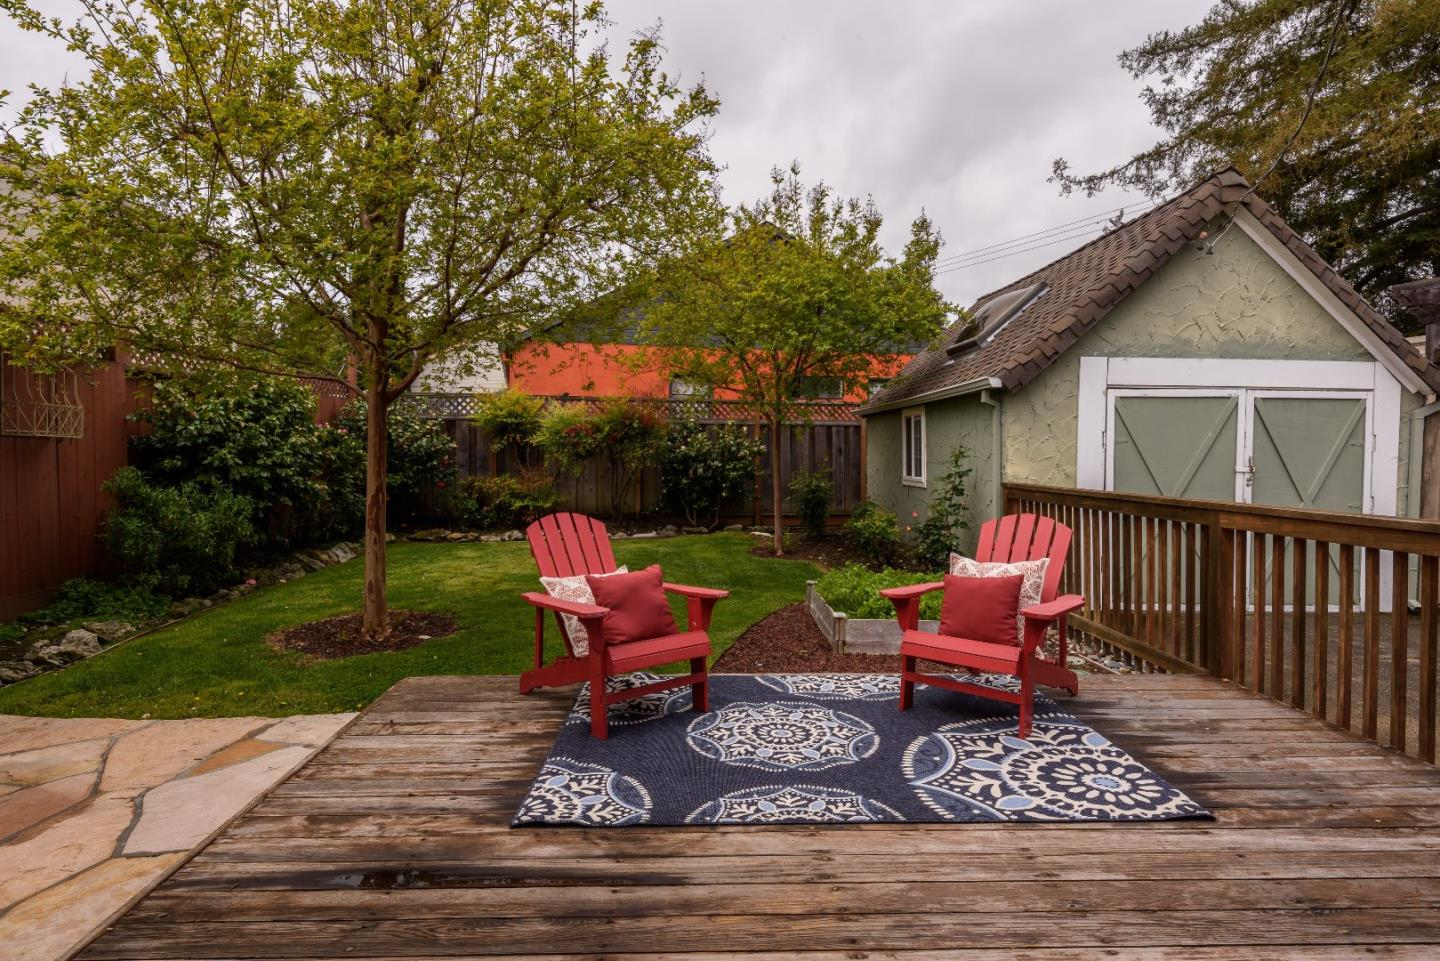 Additional photo for property listing at 212 Hillview Ave  REDWOOD CITY, CALIFORNIA 94062